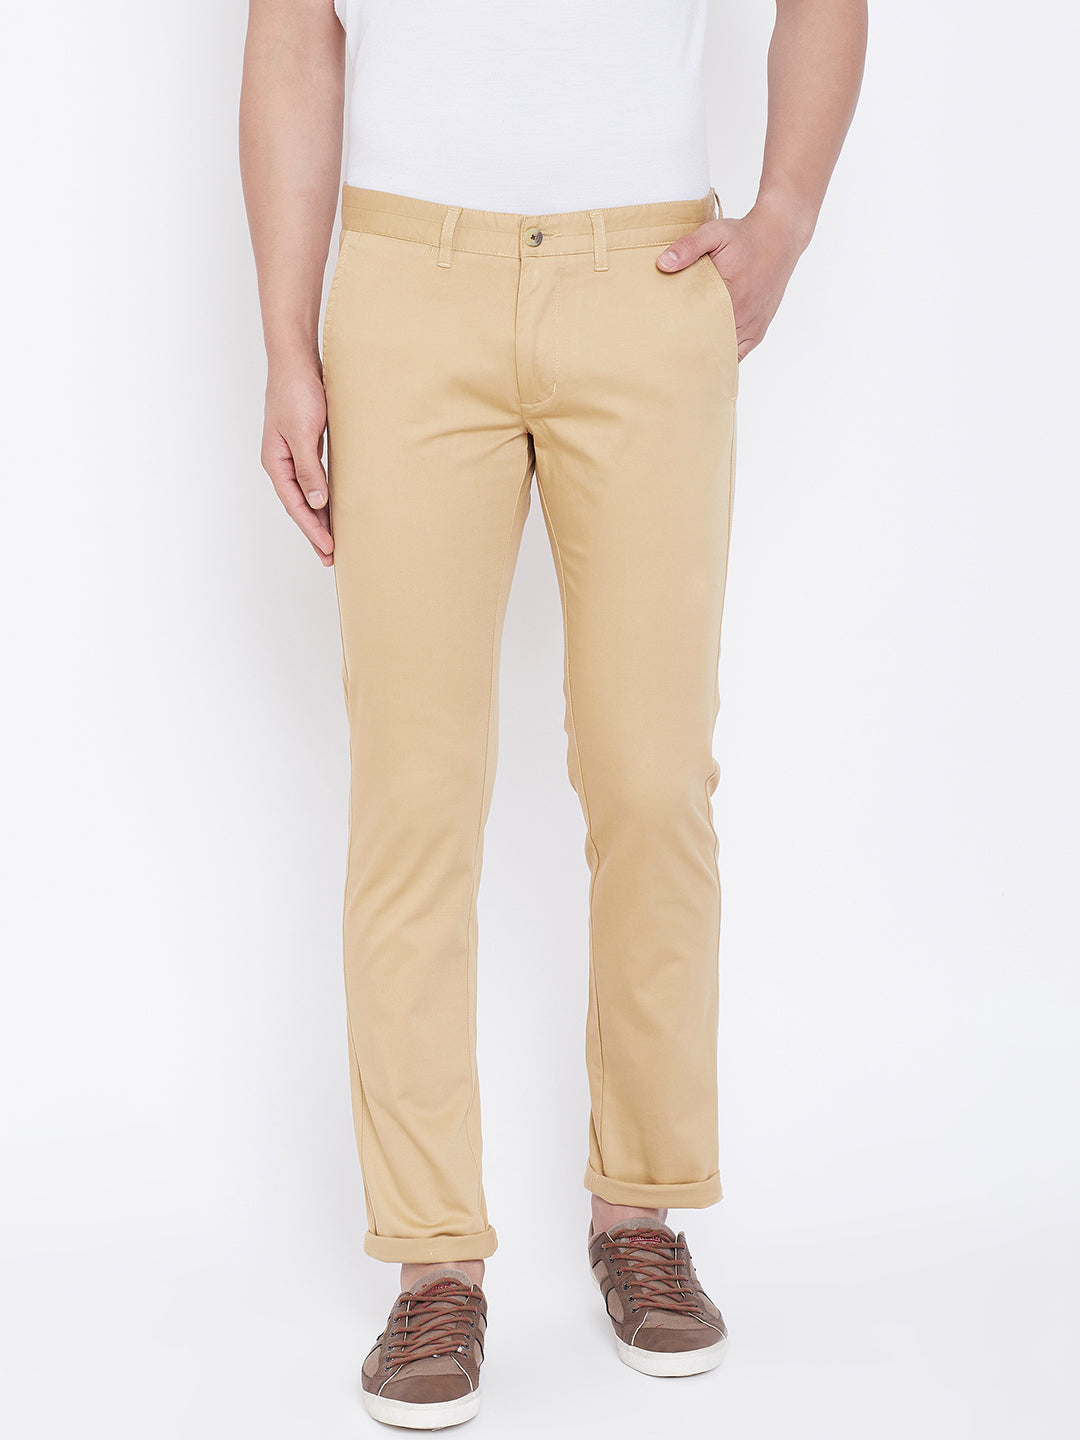 JUMP USA Men Camel Regular Fit Solid Trousers - JUMP USA